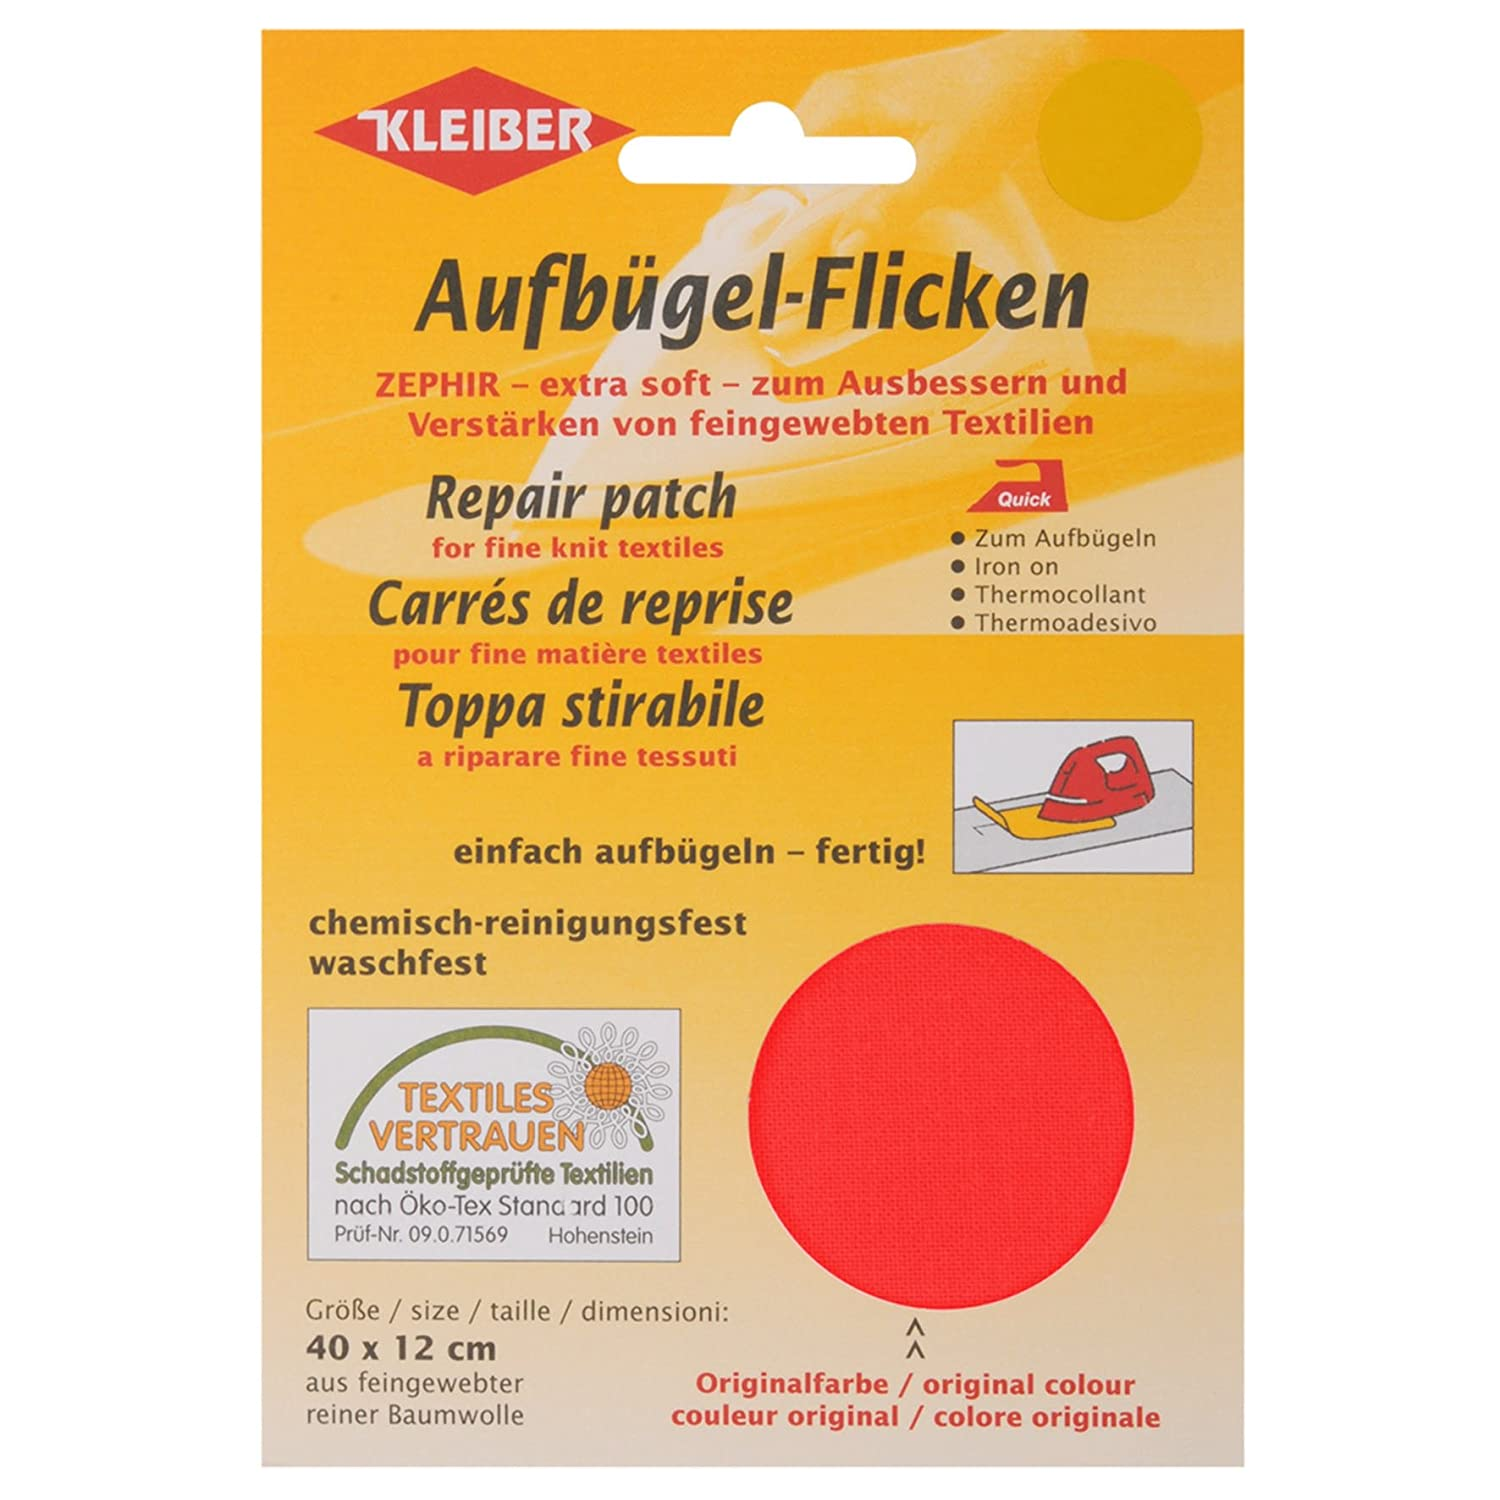 Kleiber 40 x 12 cm Cotton Iron on Repair Patch for Fine Knit Textiles, Red 320-10